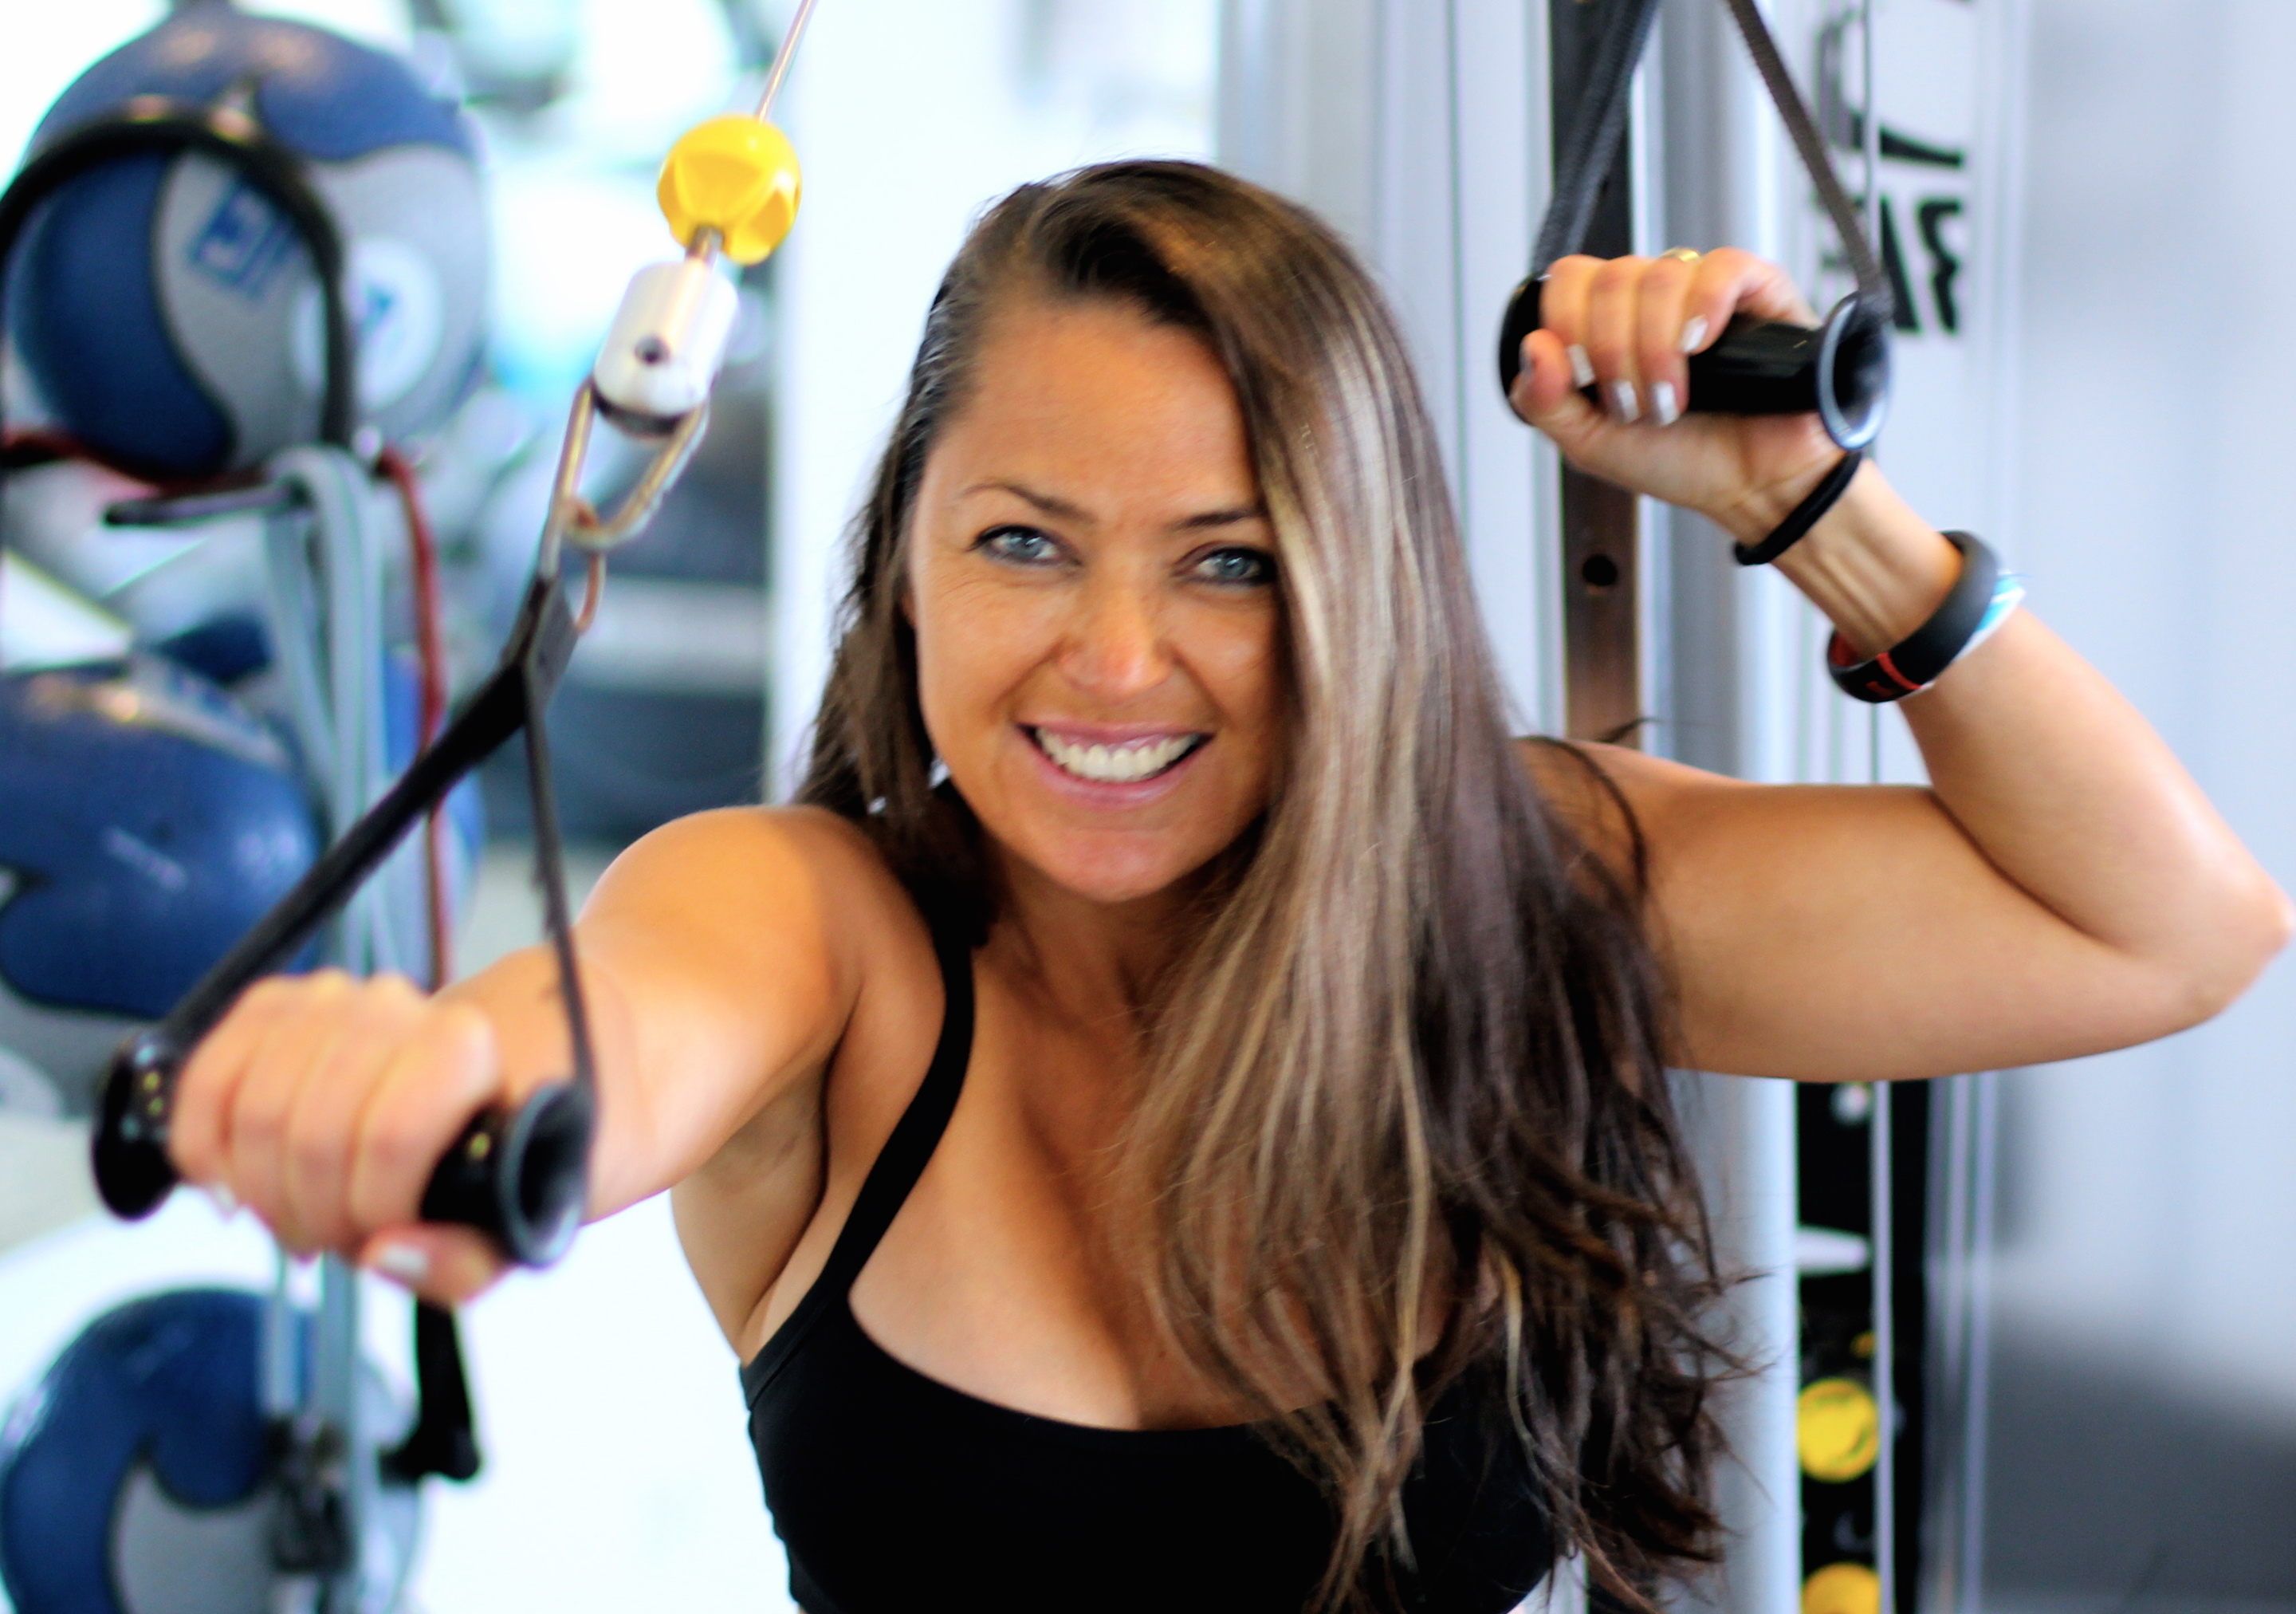 Beachbody coach success stories rosario armenta for Rosario fitness gimnasio